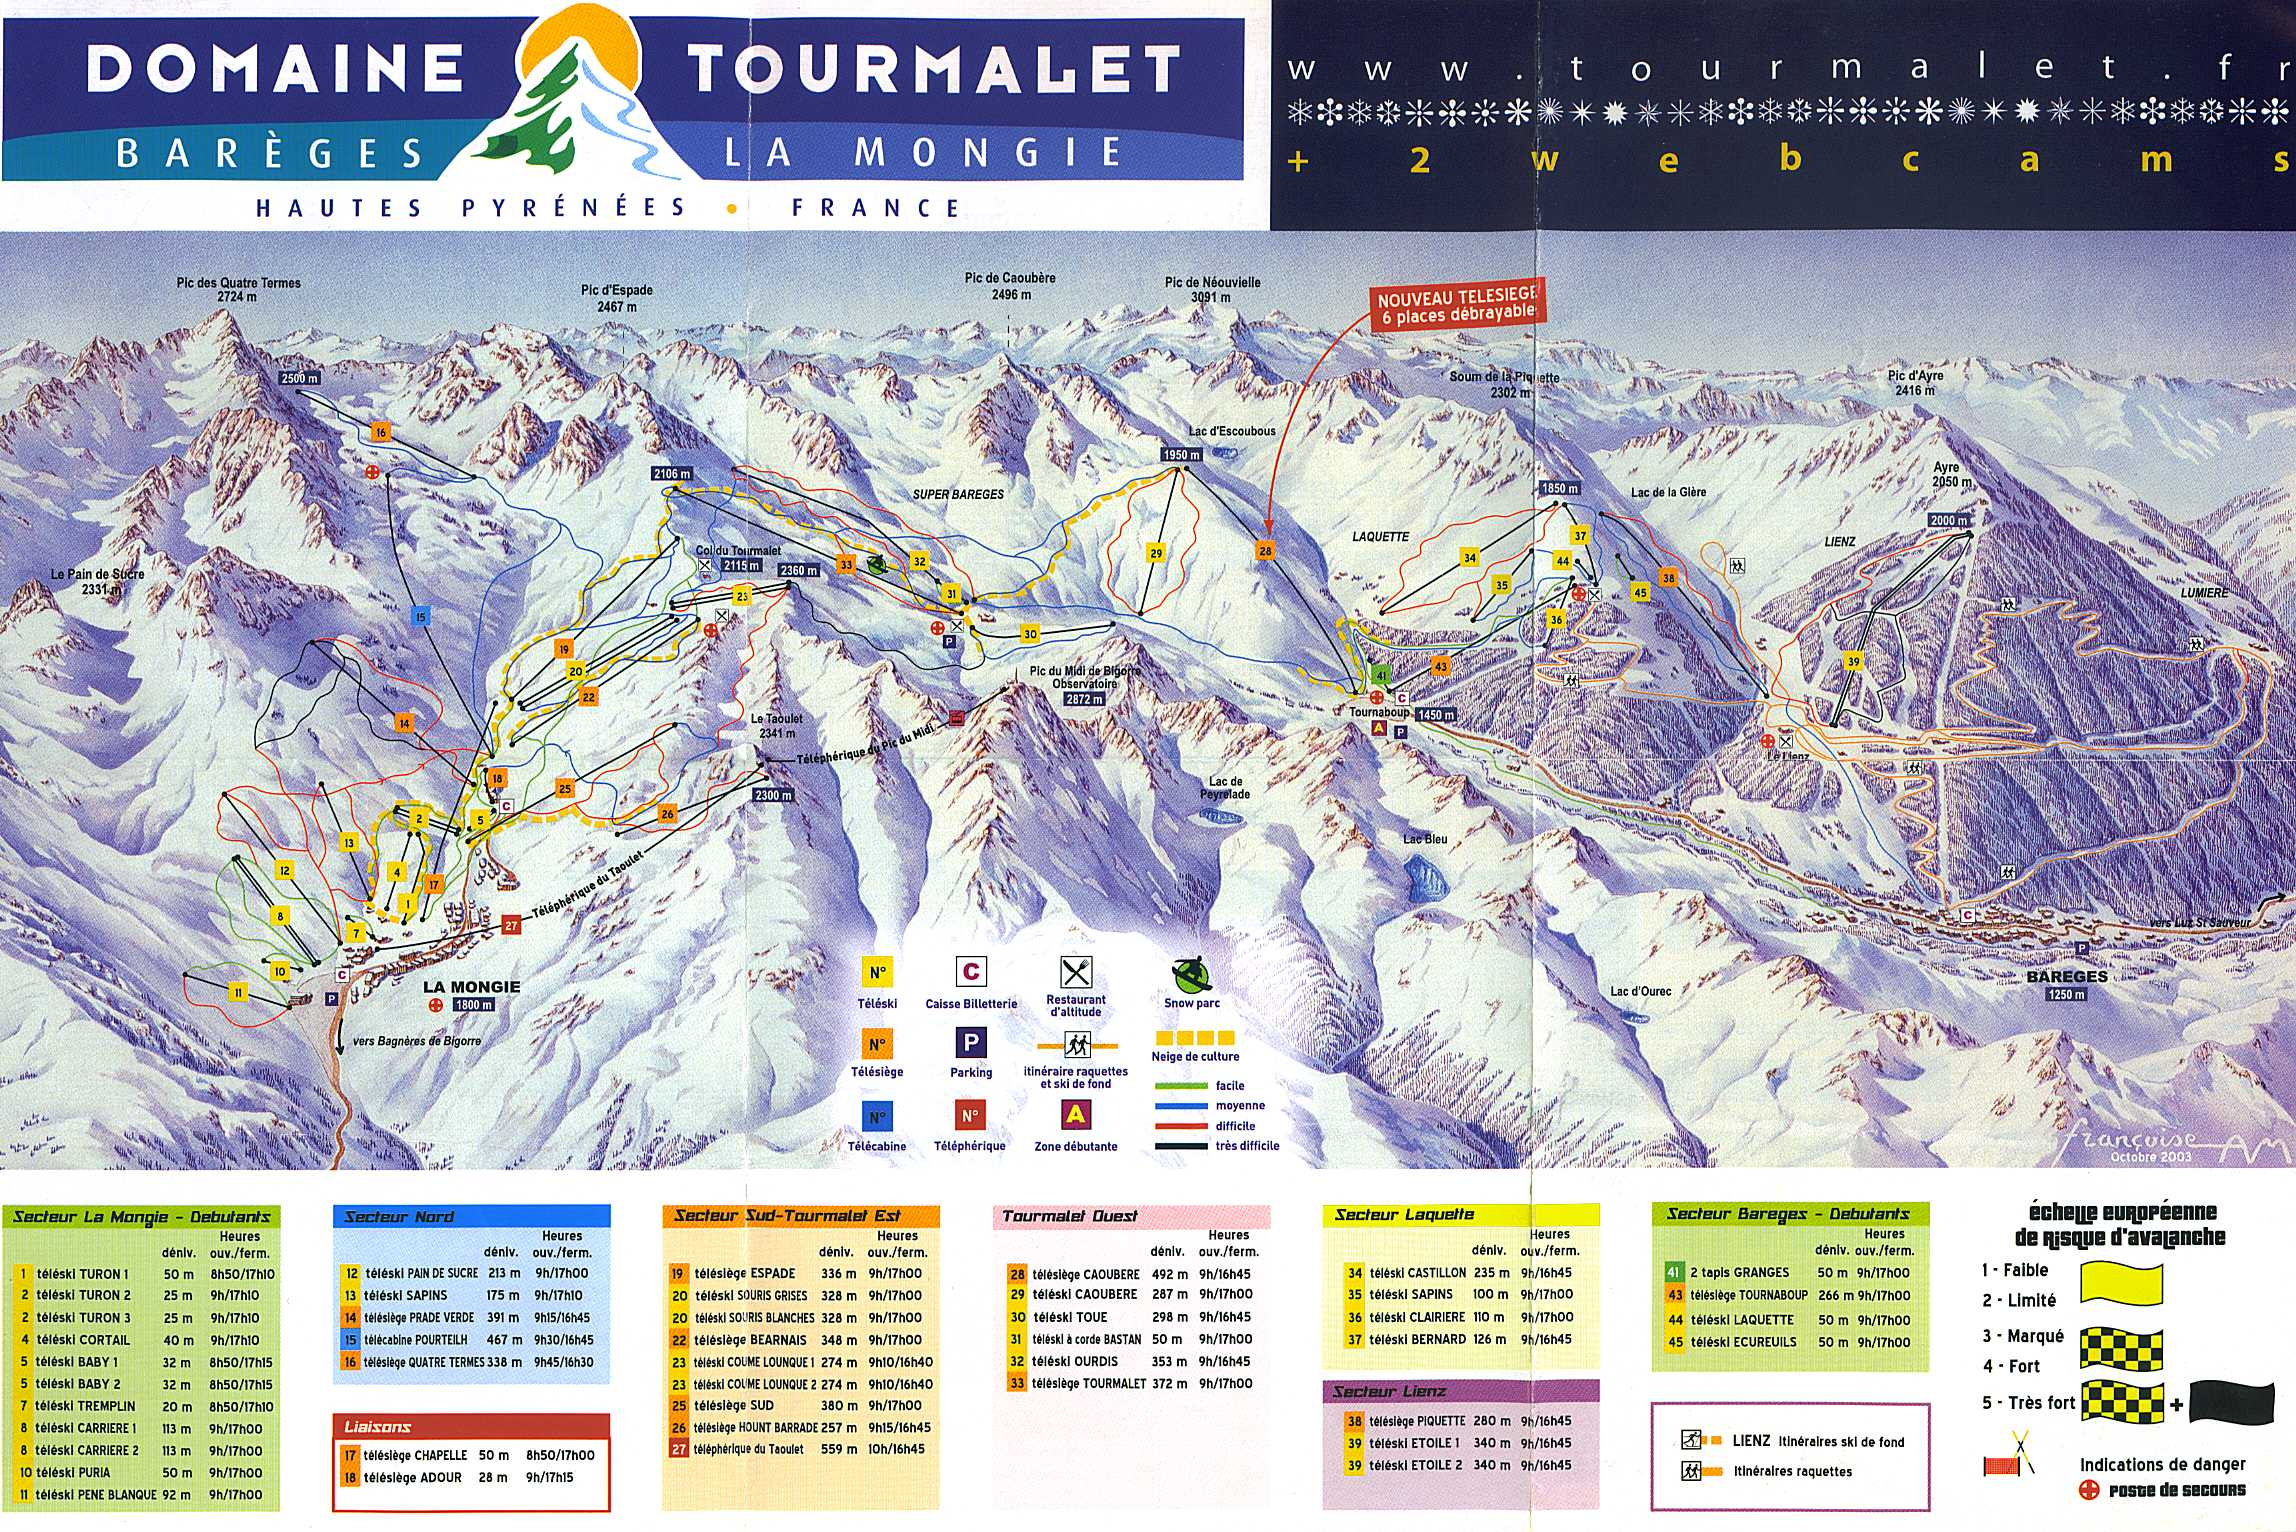 La Mongie piste map